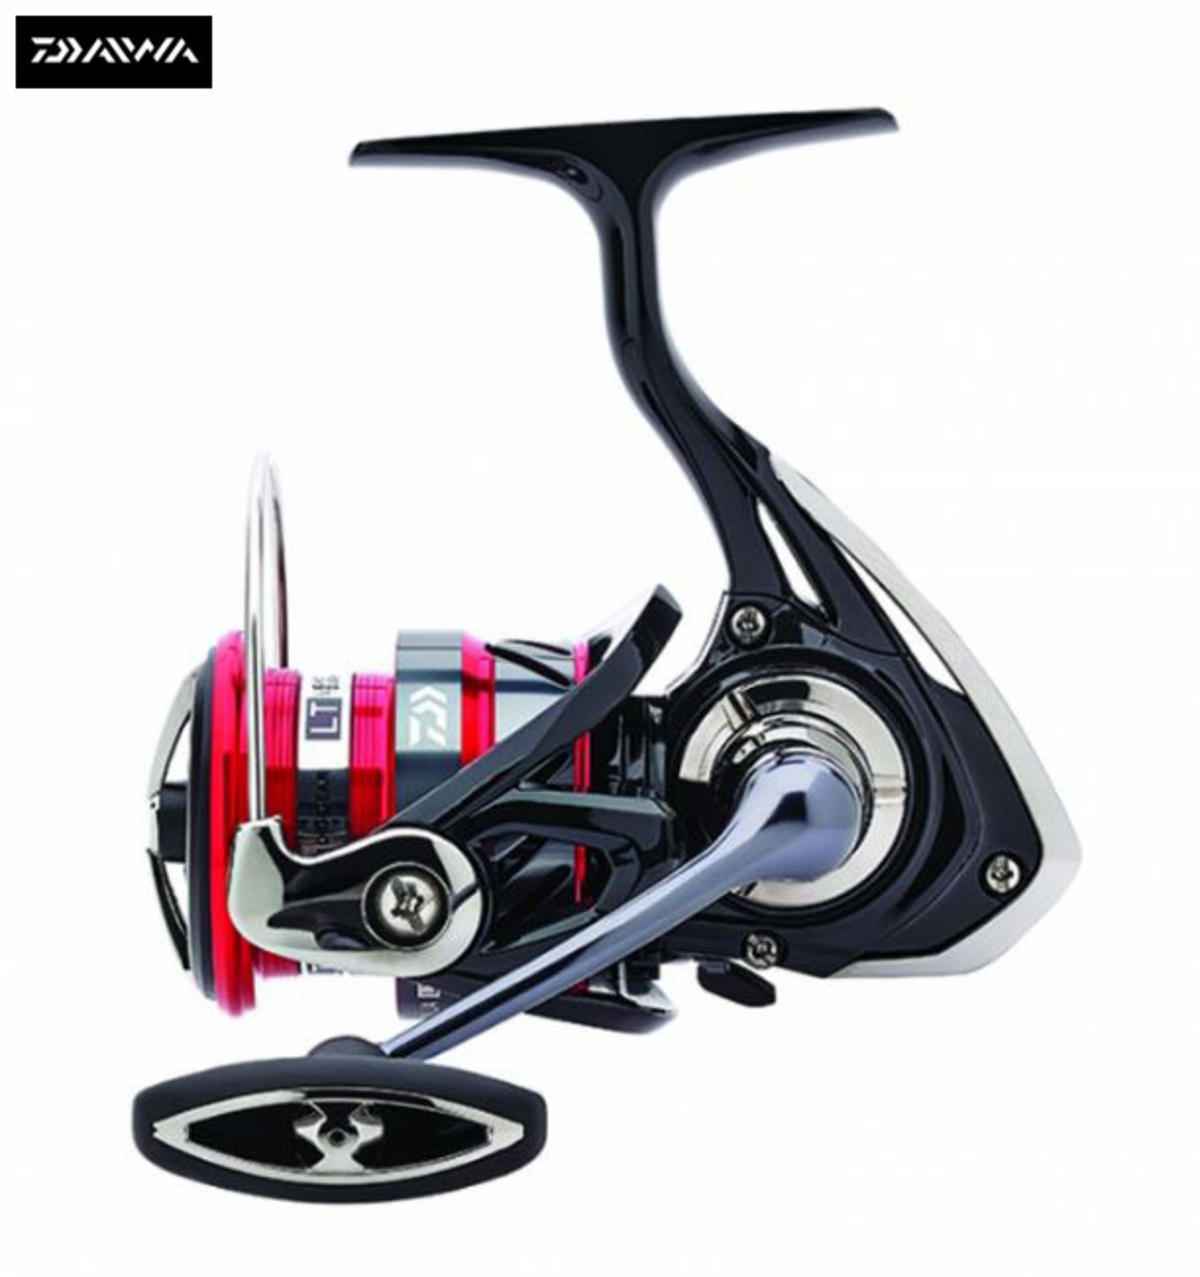 Ex Display Daiwa 18 Ninja LT (Light & Tough) Spinning Fishing Reel - 4000-C